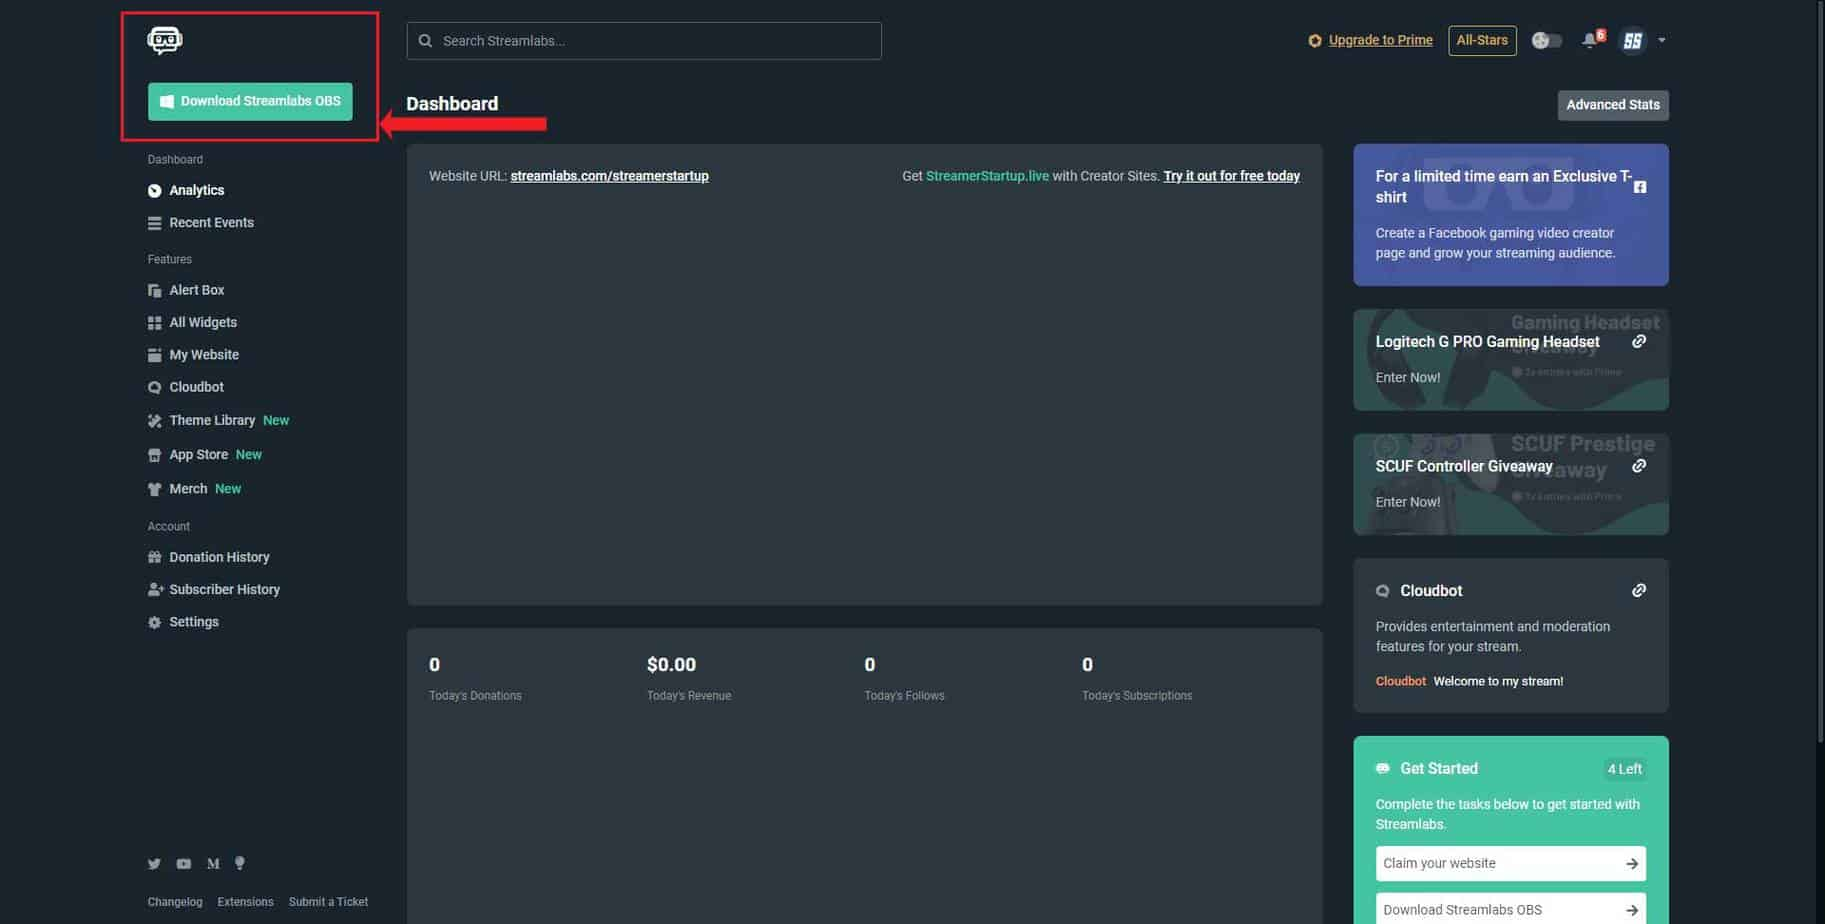 Download Streamlabs OBS